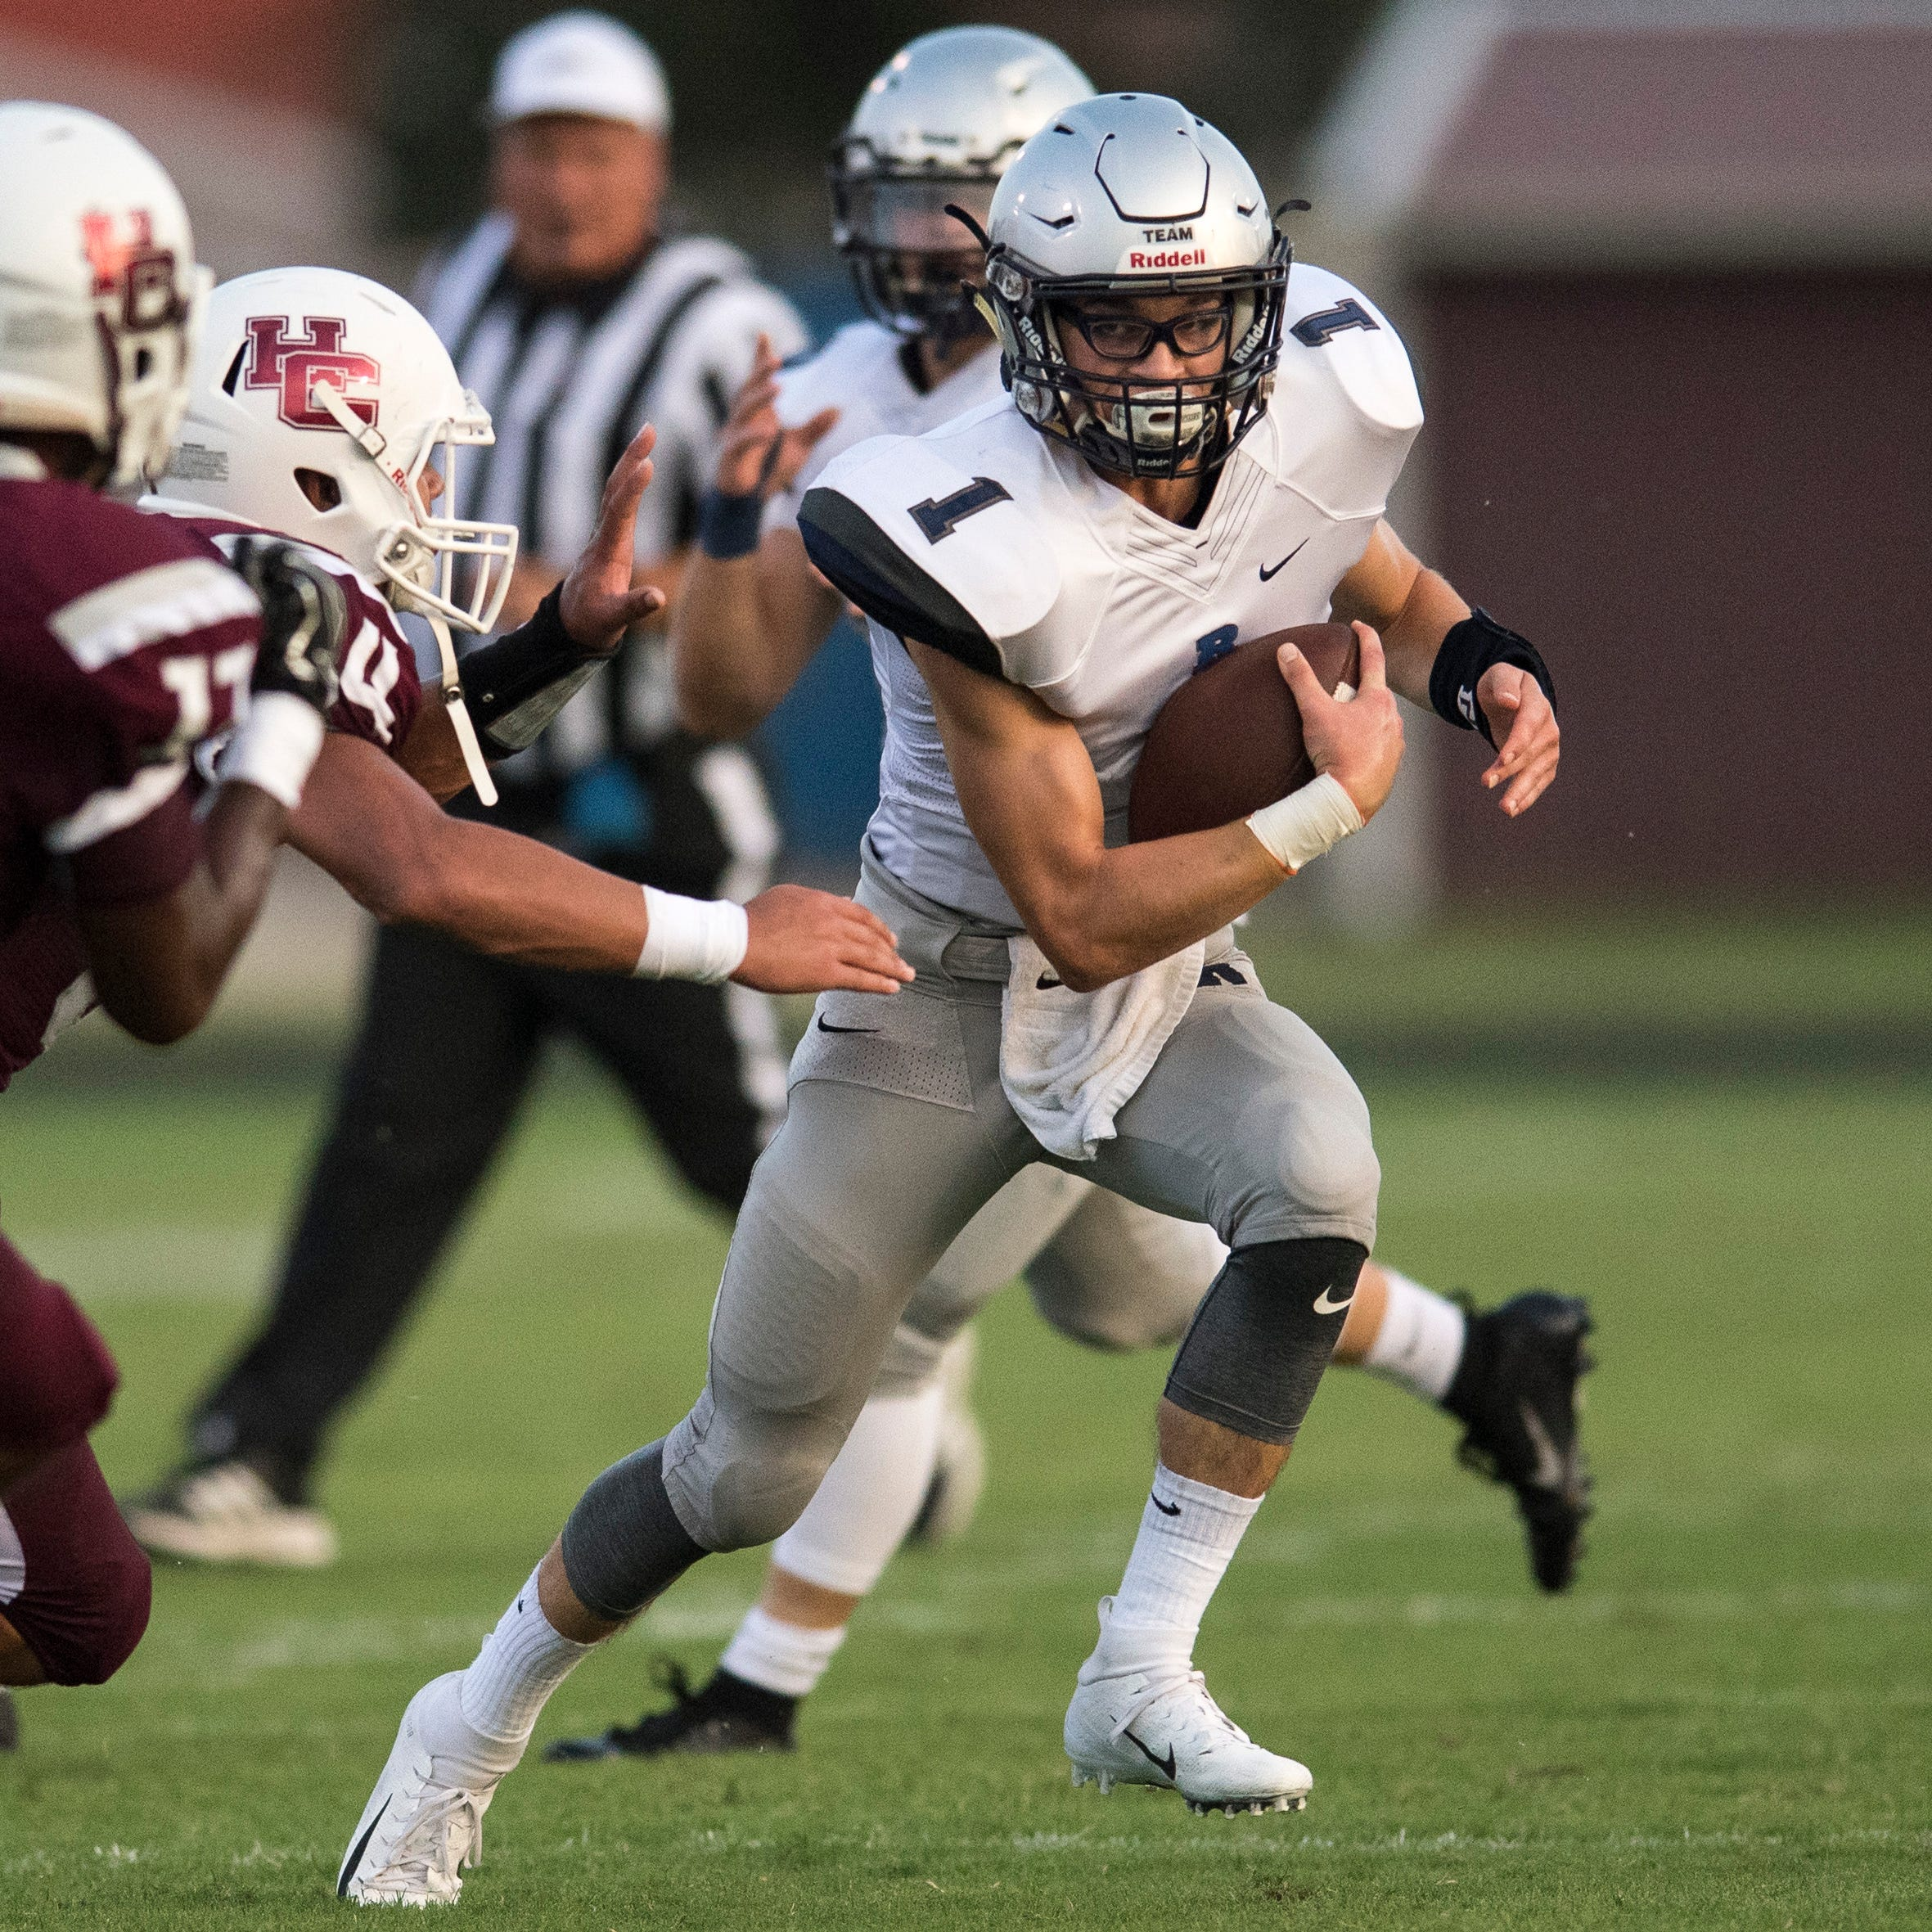 Eli Wiethop leads Reitz to 41-35 win over Henderson County in opener